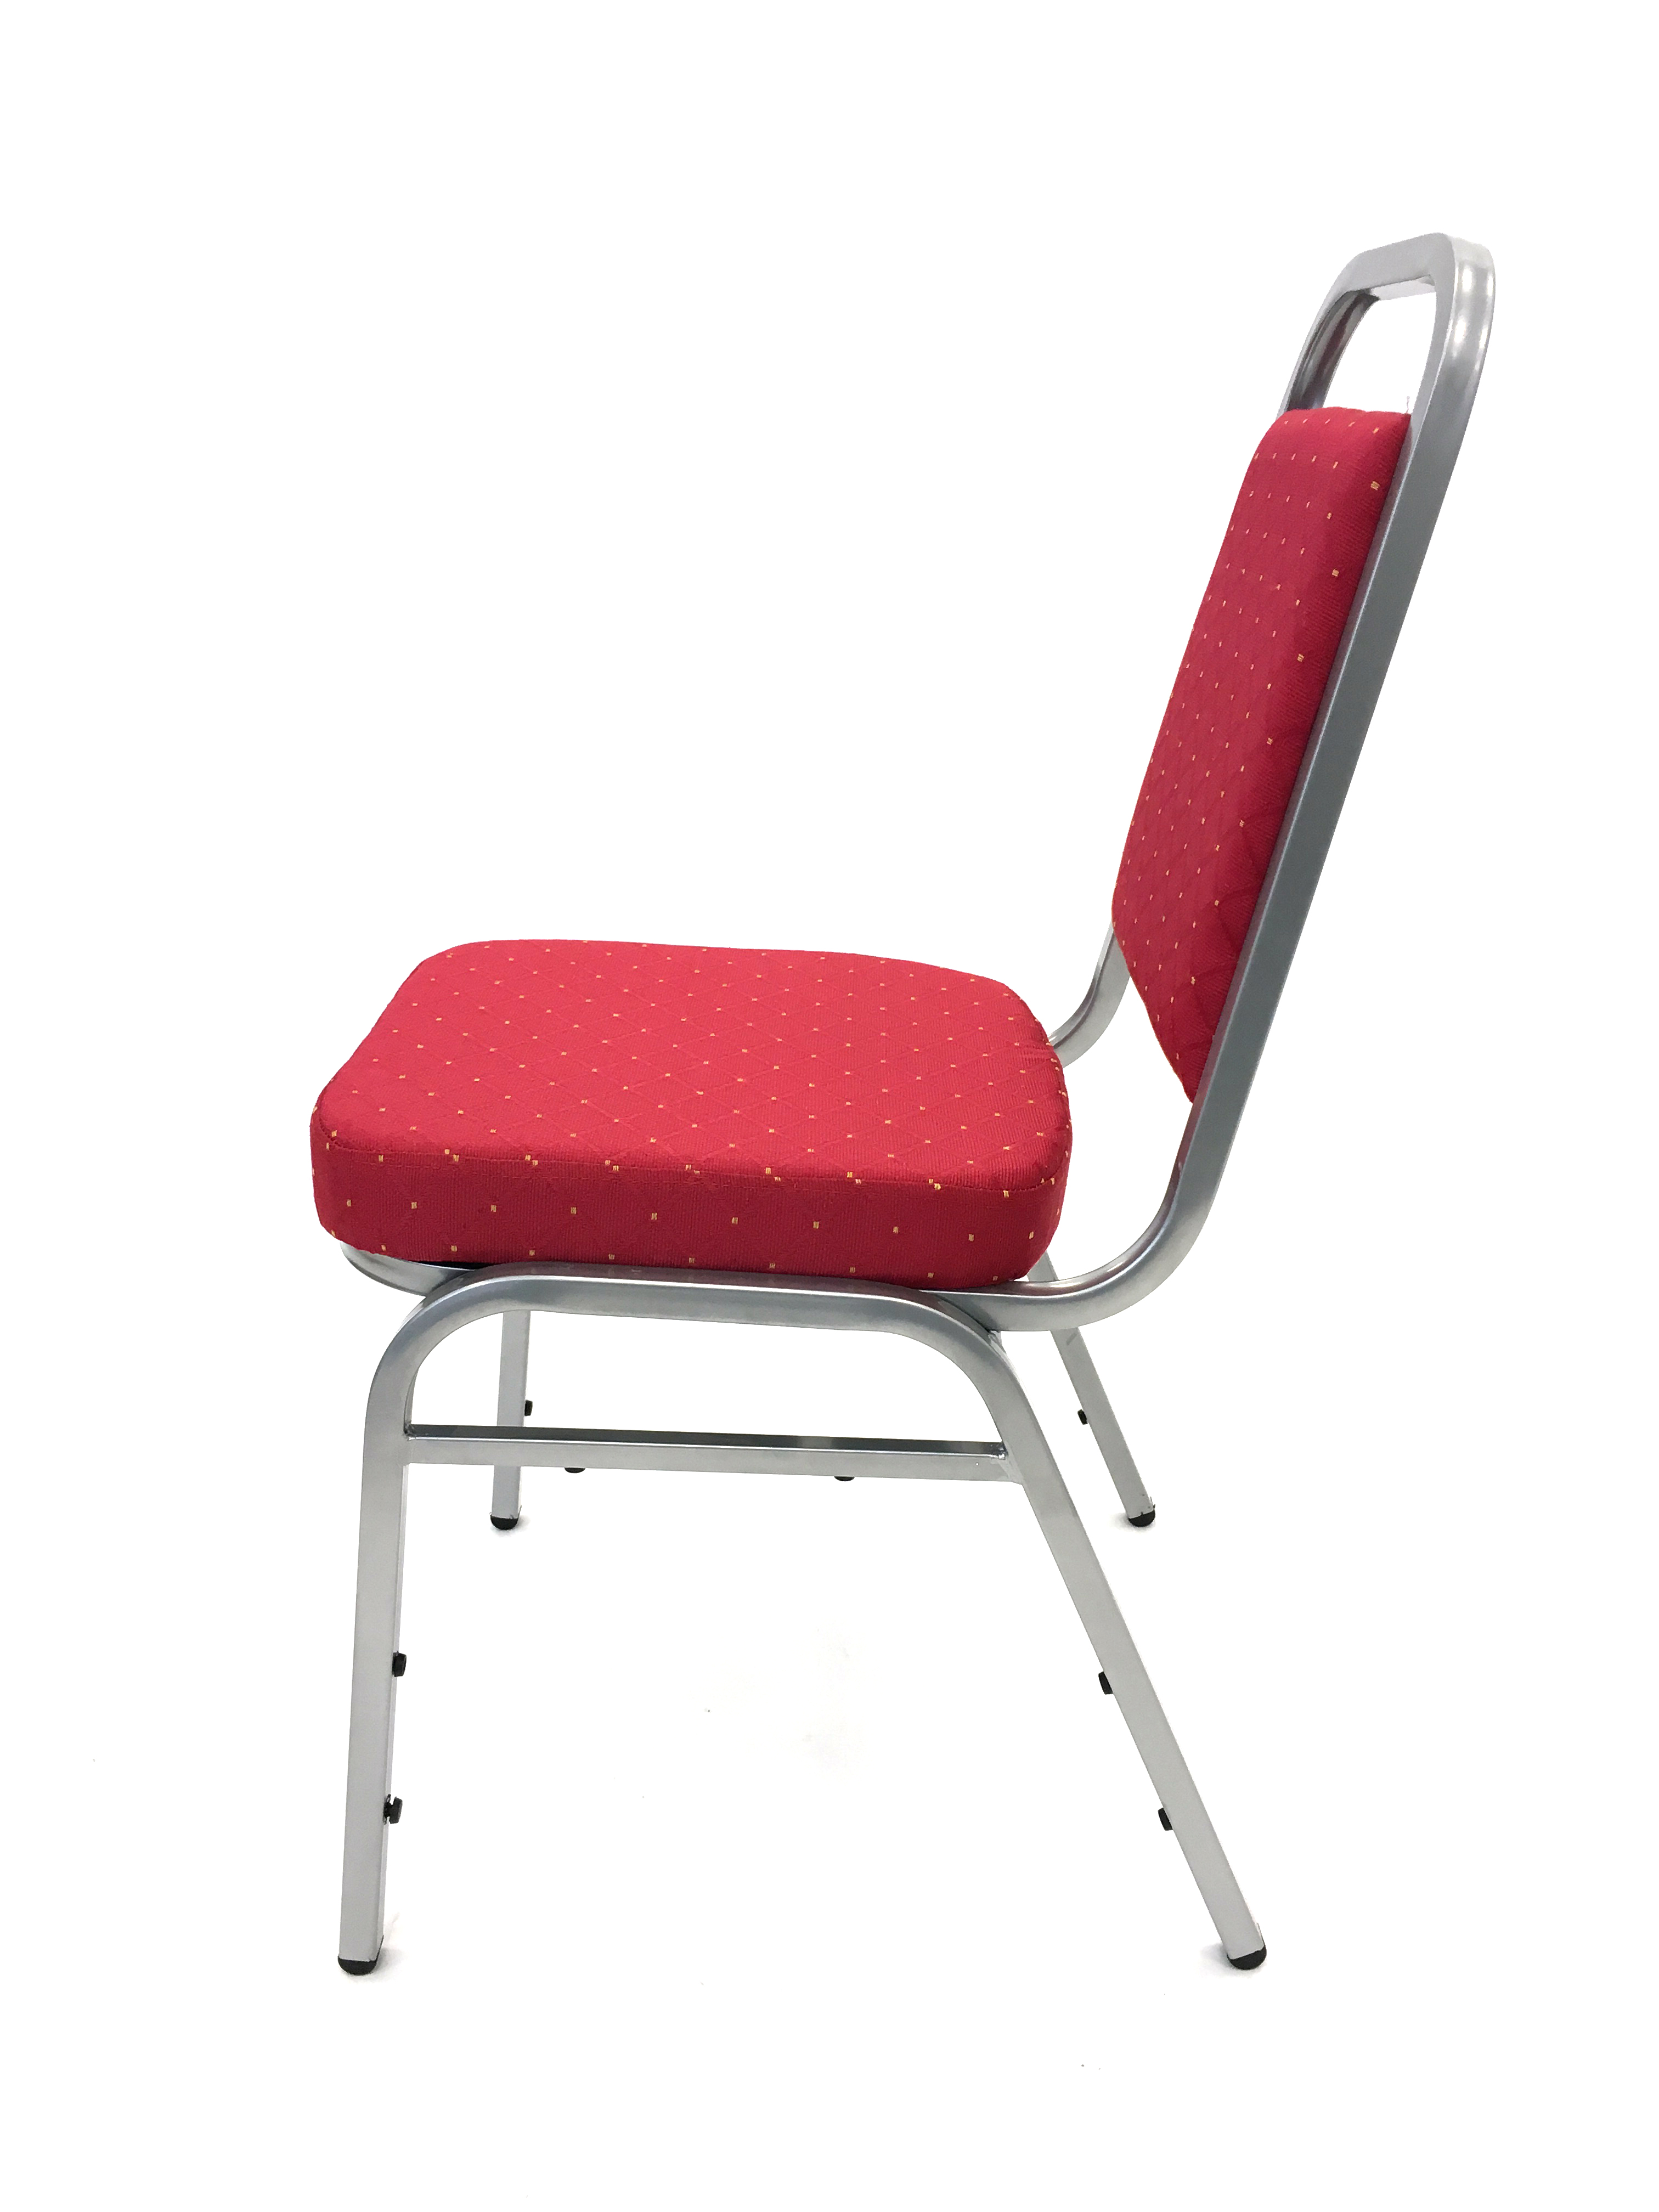 Red Budget Banquet Chair Hire Weddings Event Chairs